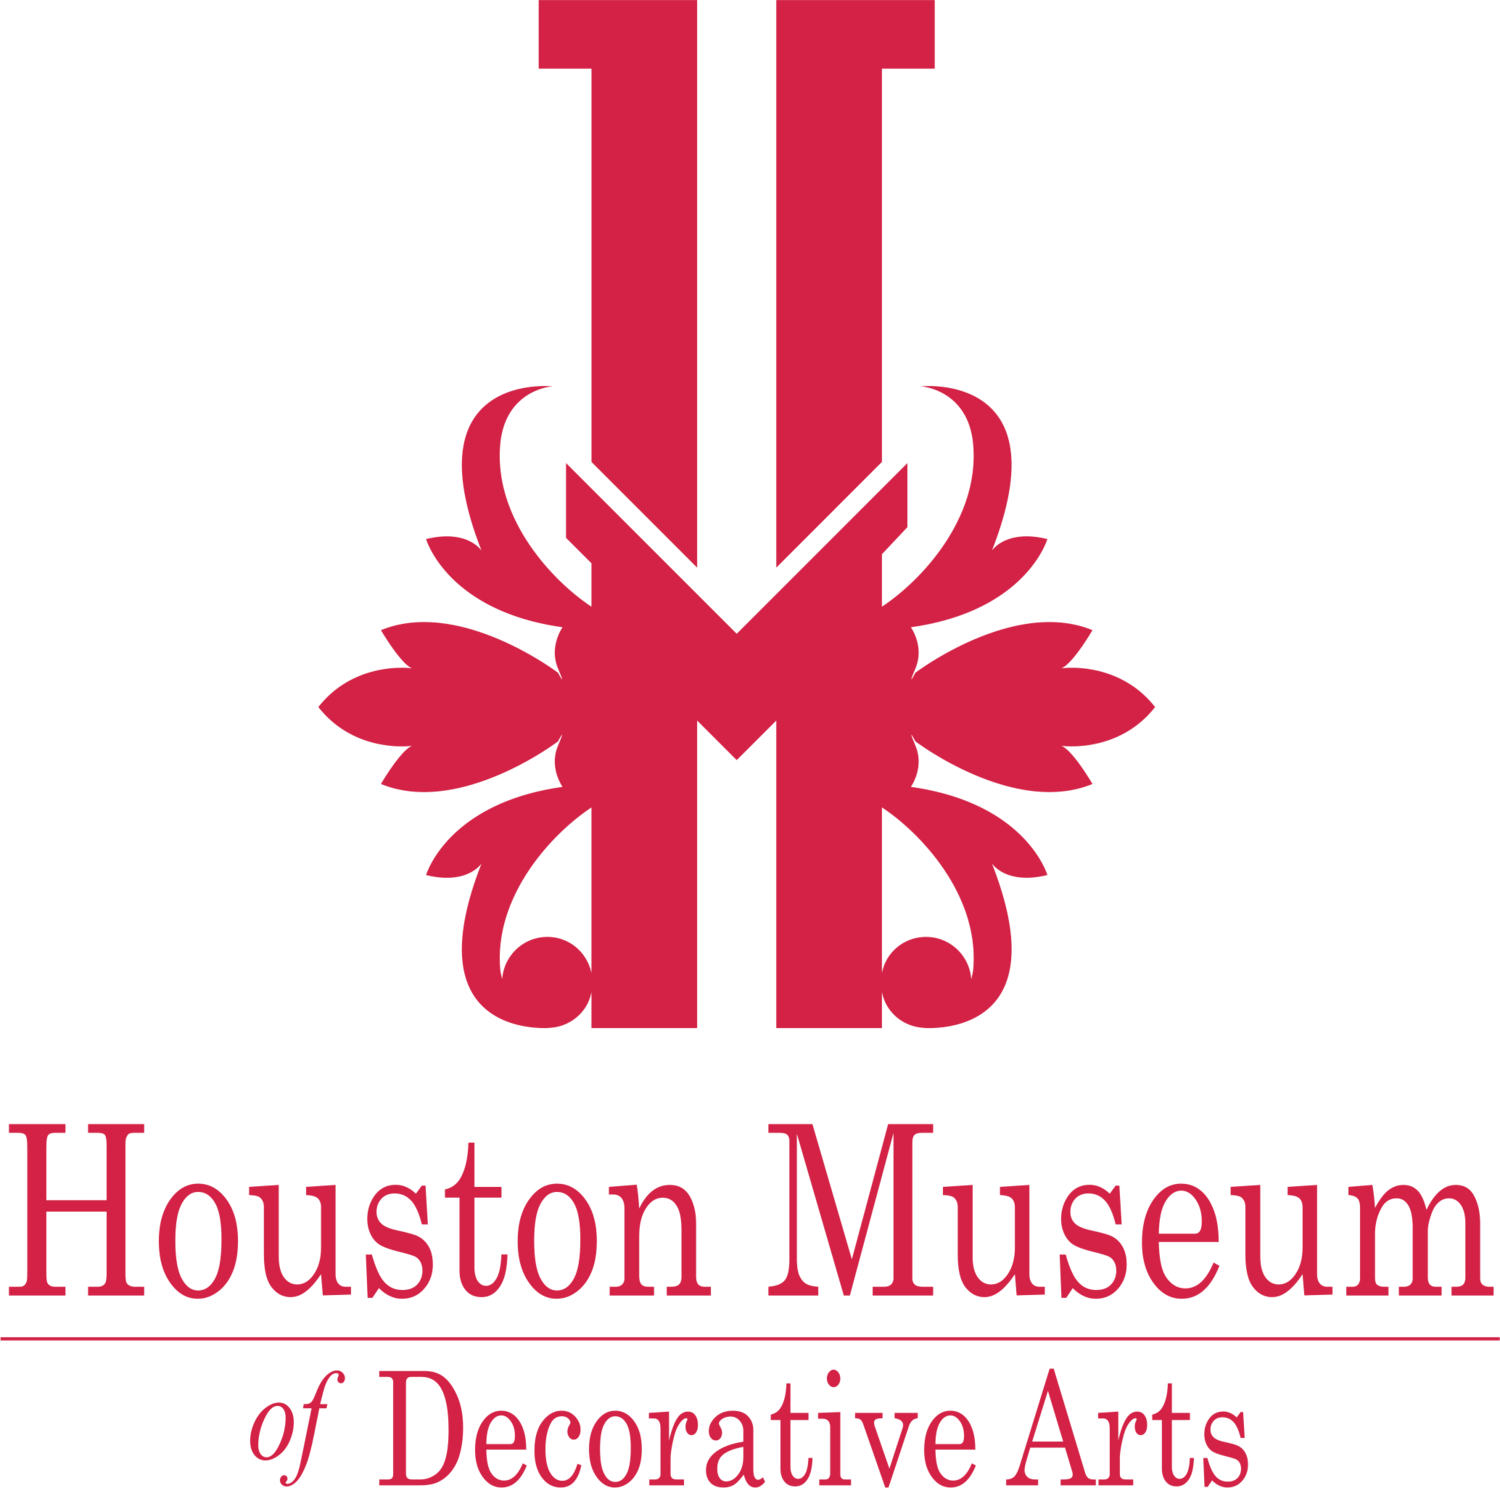 Houston Museum of Decorative Arts